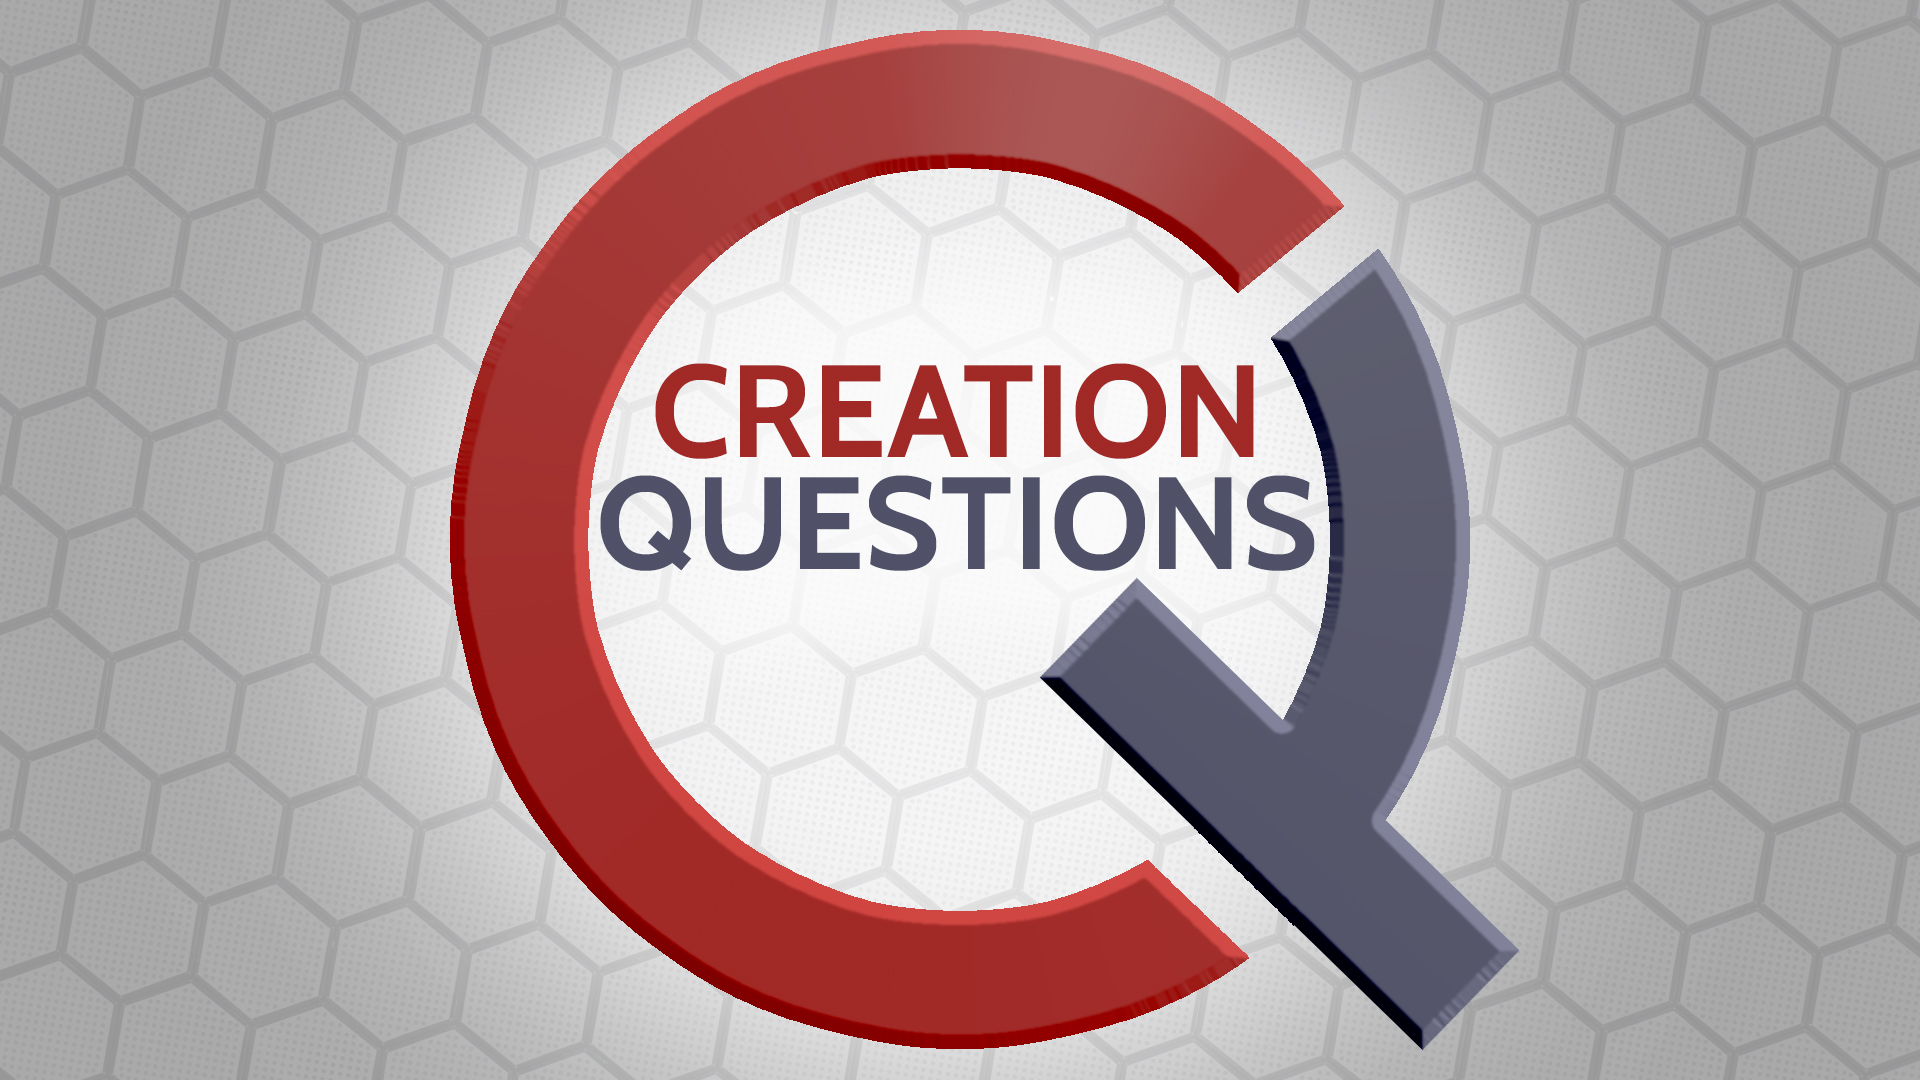 Creation Questions